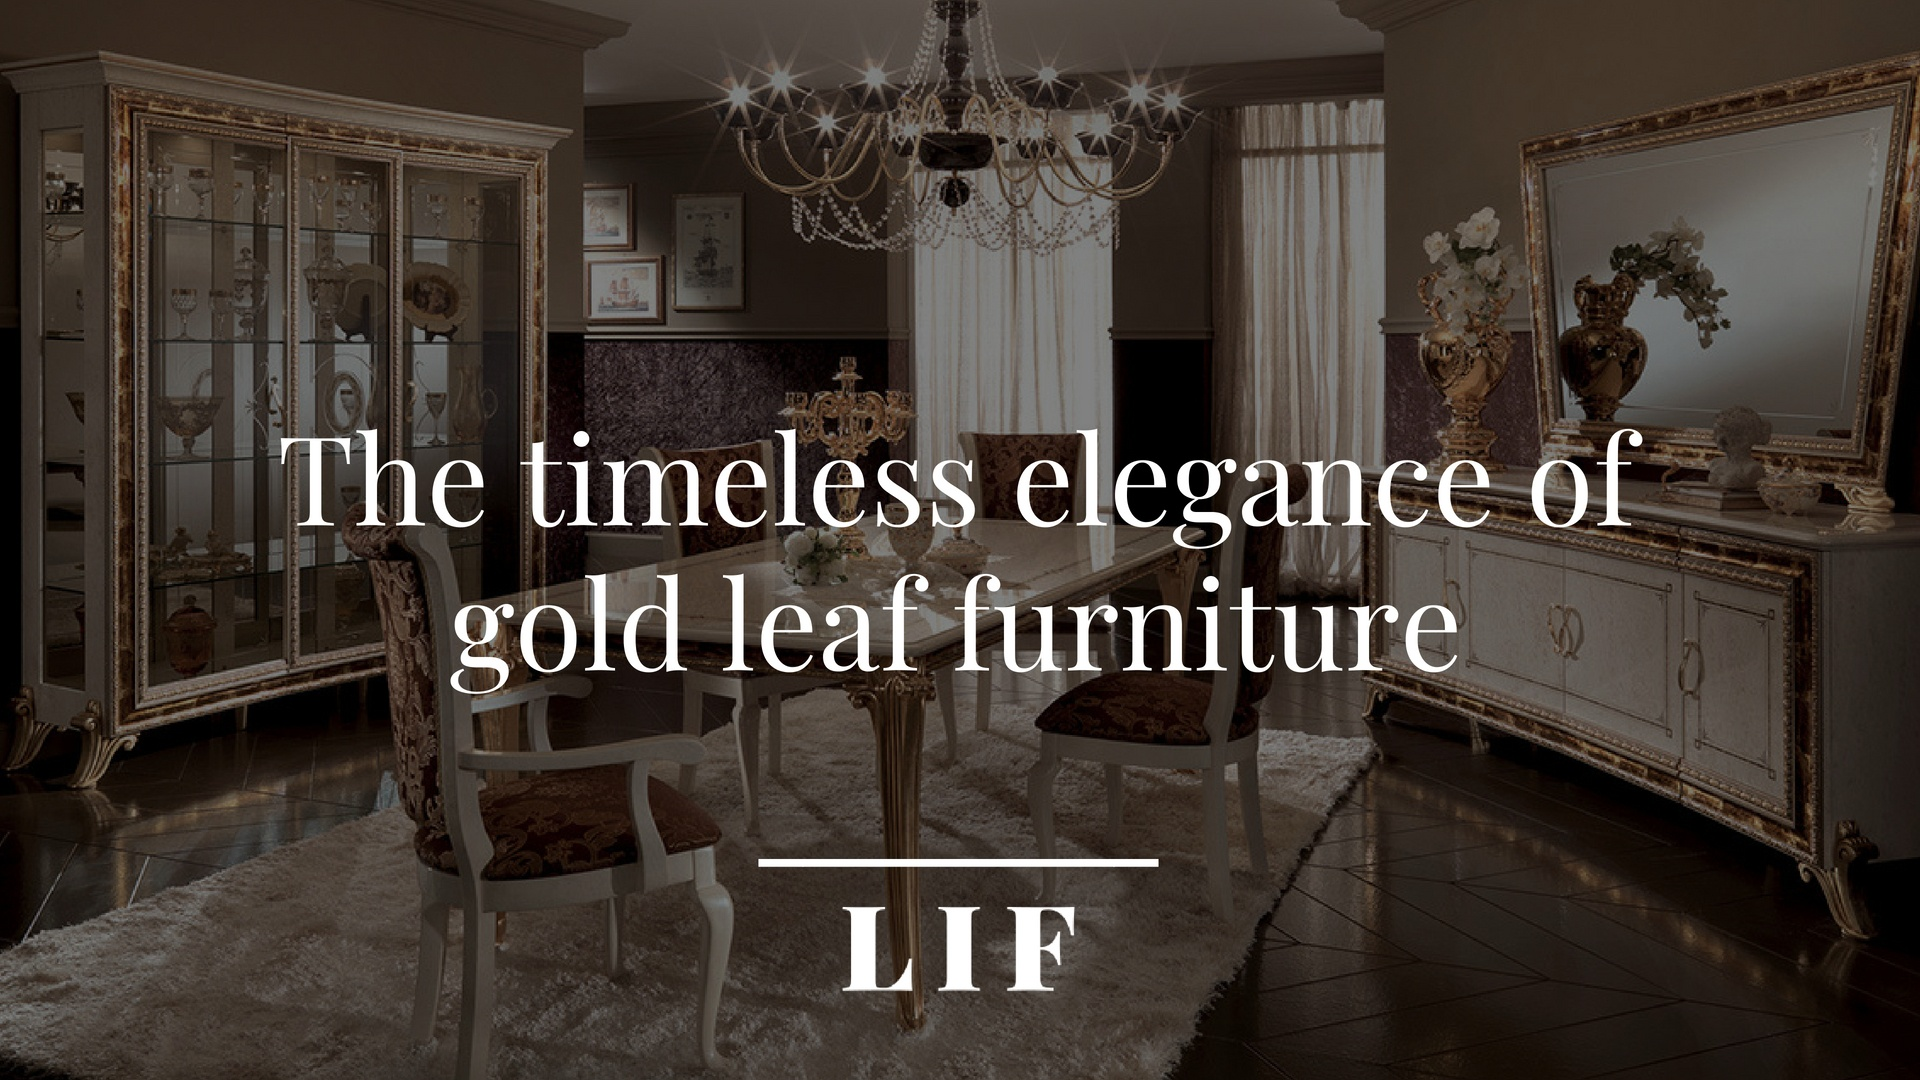 The timeless elegance of gold leaf furniture